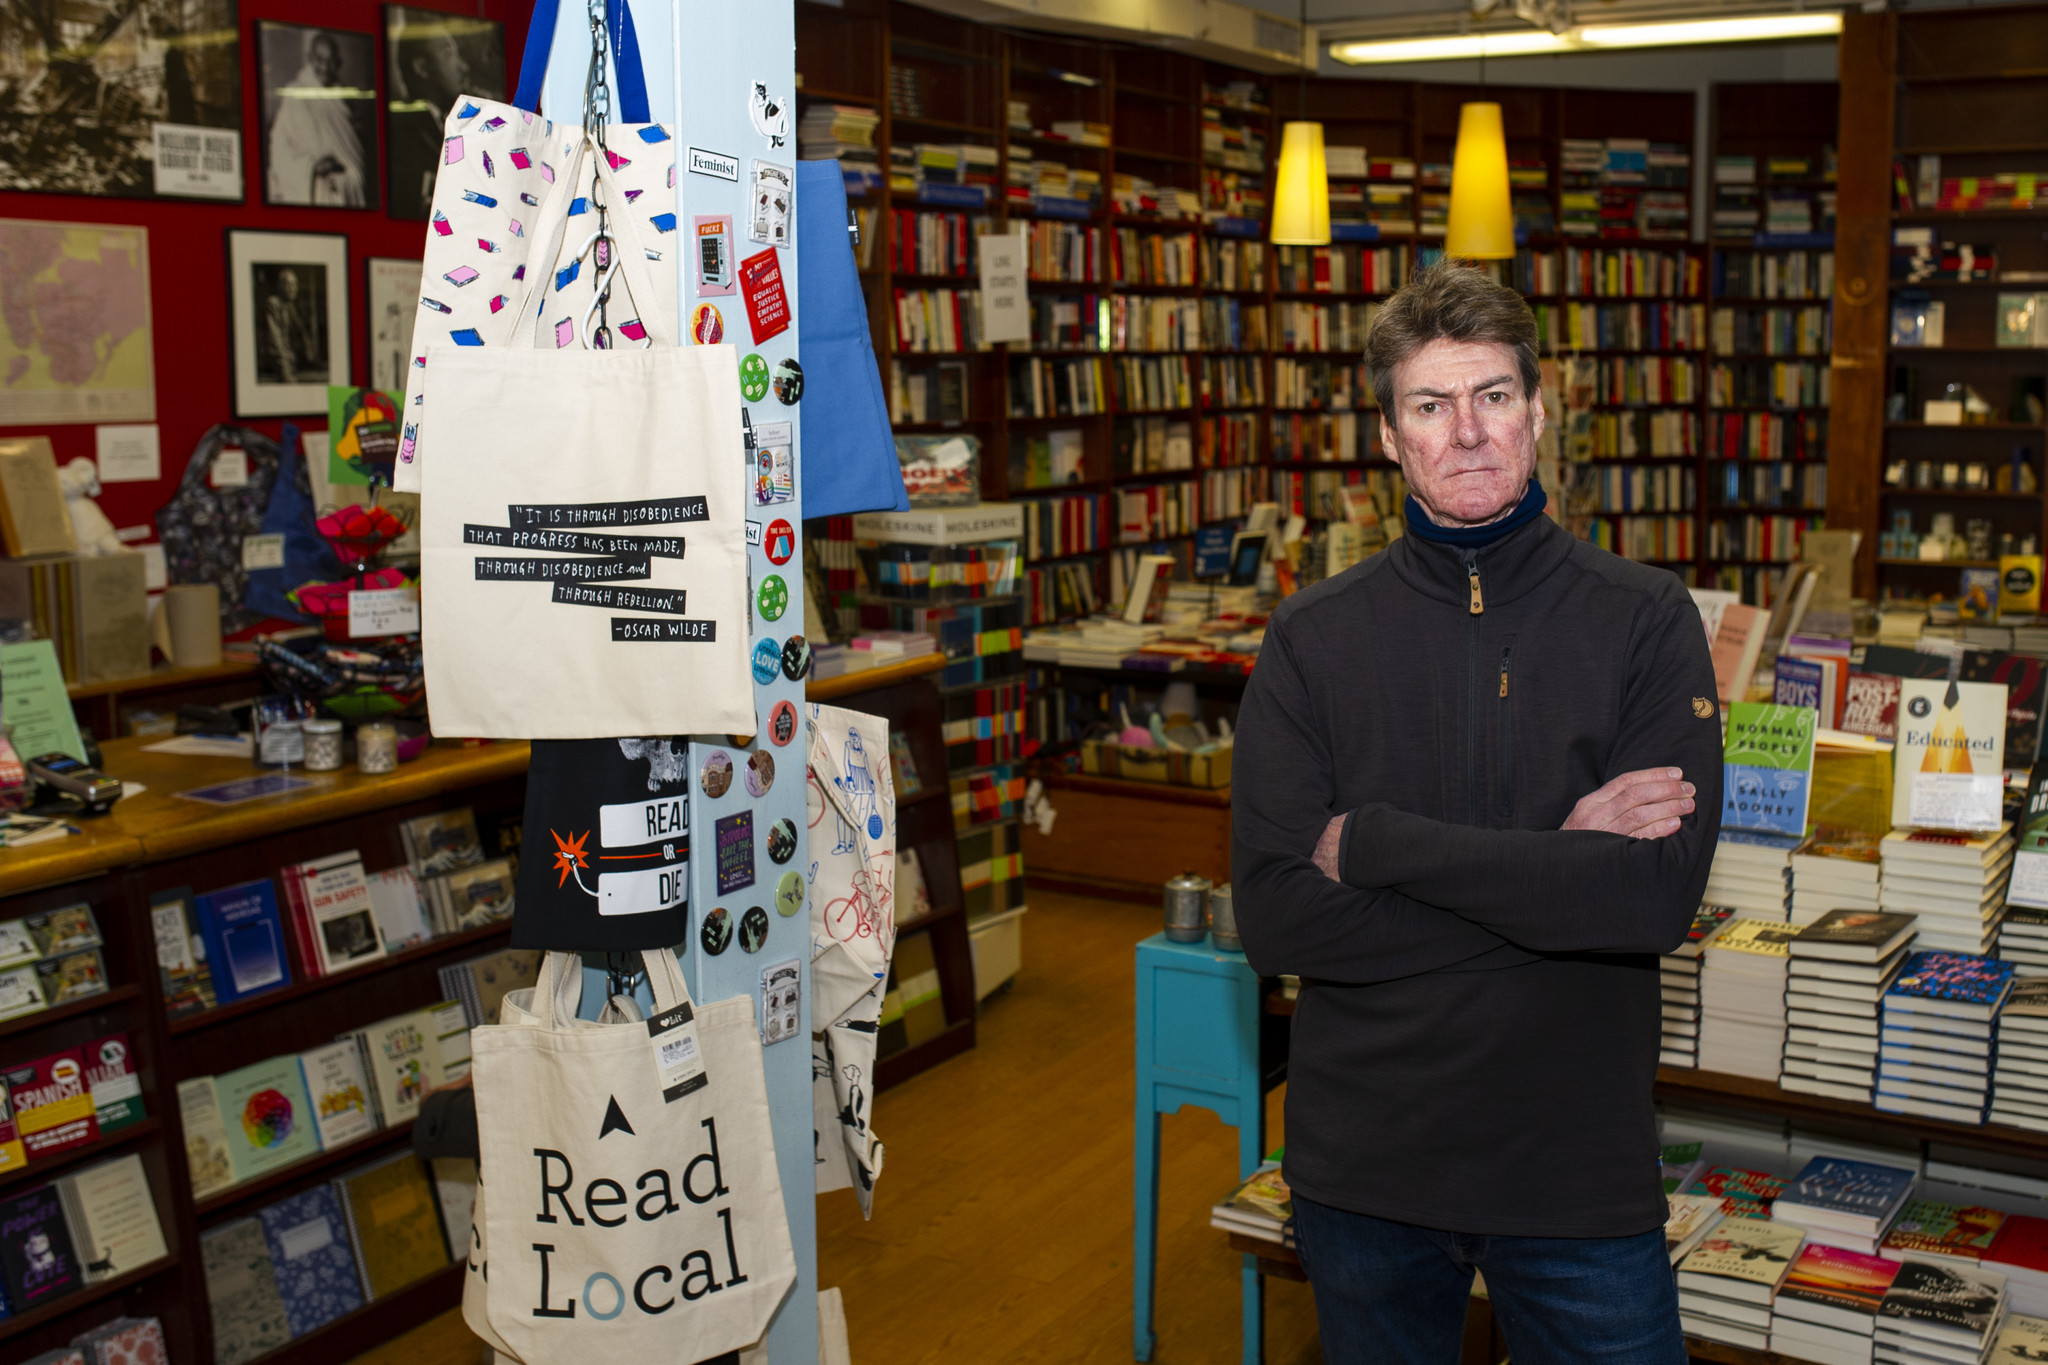 Manhattan bookstore opened to enthusiam, closed amid rent feud and fraud charges